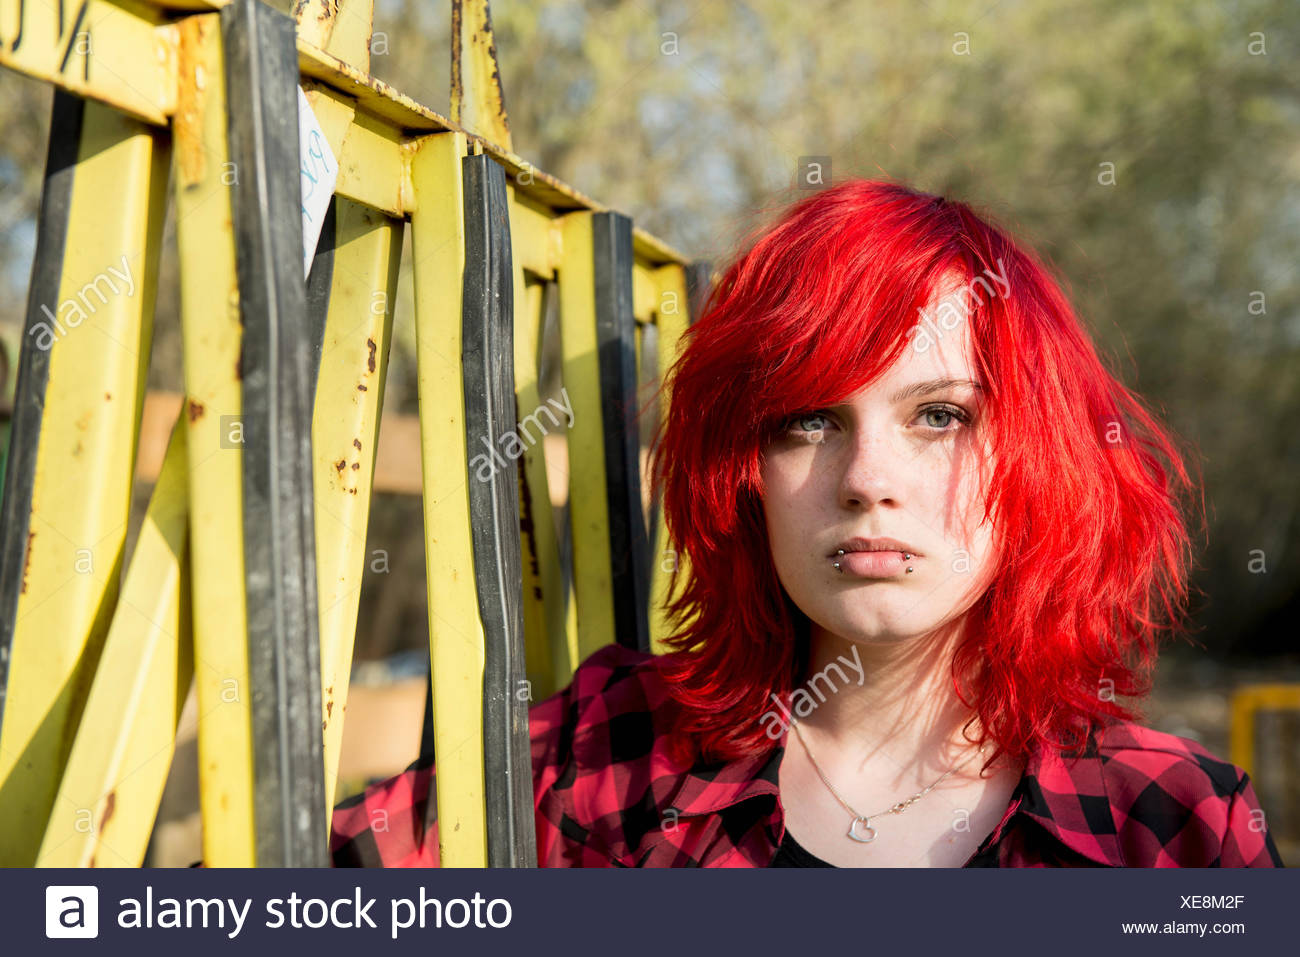 Angry young teenage defiant Punk girl portrait Stock Photo